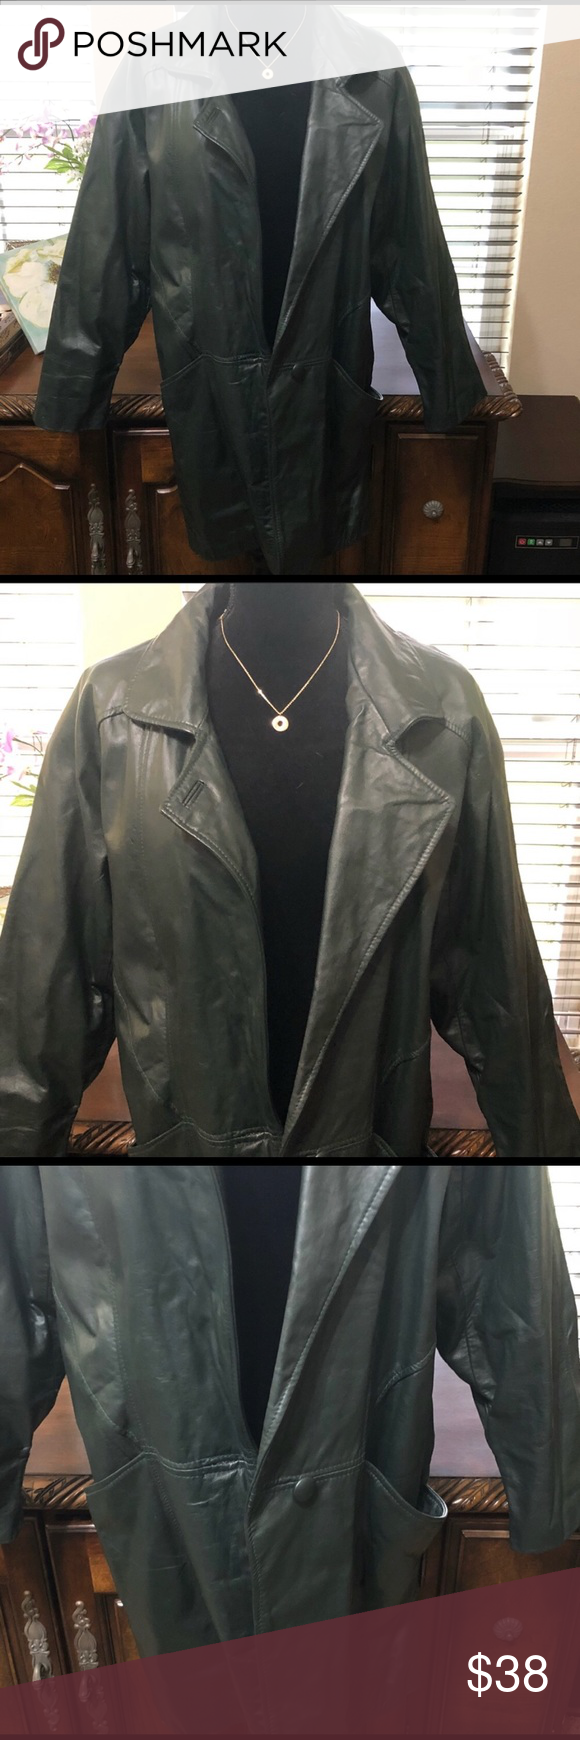 Comint Leather Dark Green Leather Jacket Size Med Euc See Photos For Description Size Medium Comint Leather Jacket Green Leather Jackets Grey Leather Jacket [ 1740 x 580 Pixel ]